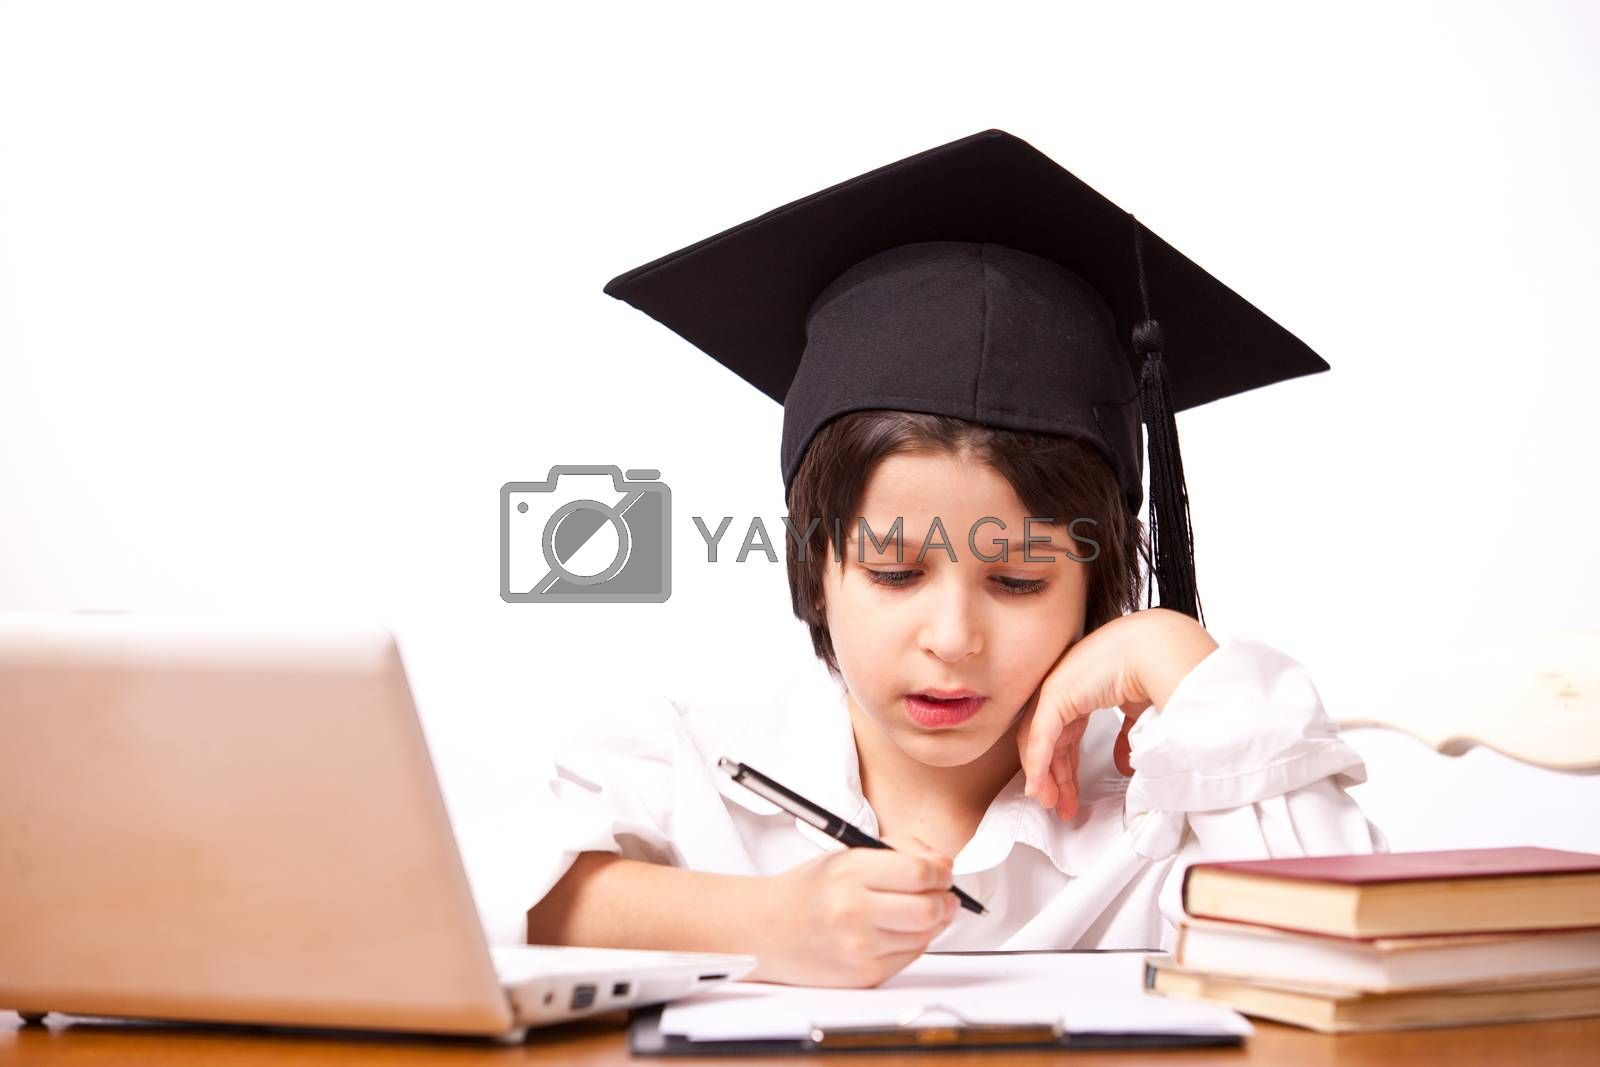 little boy in hat with computer and textbooks on white background writing on paper